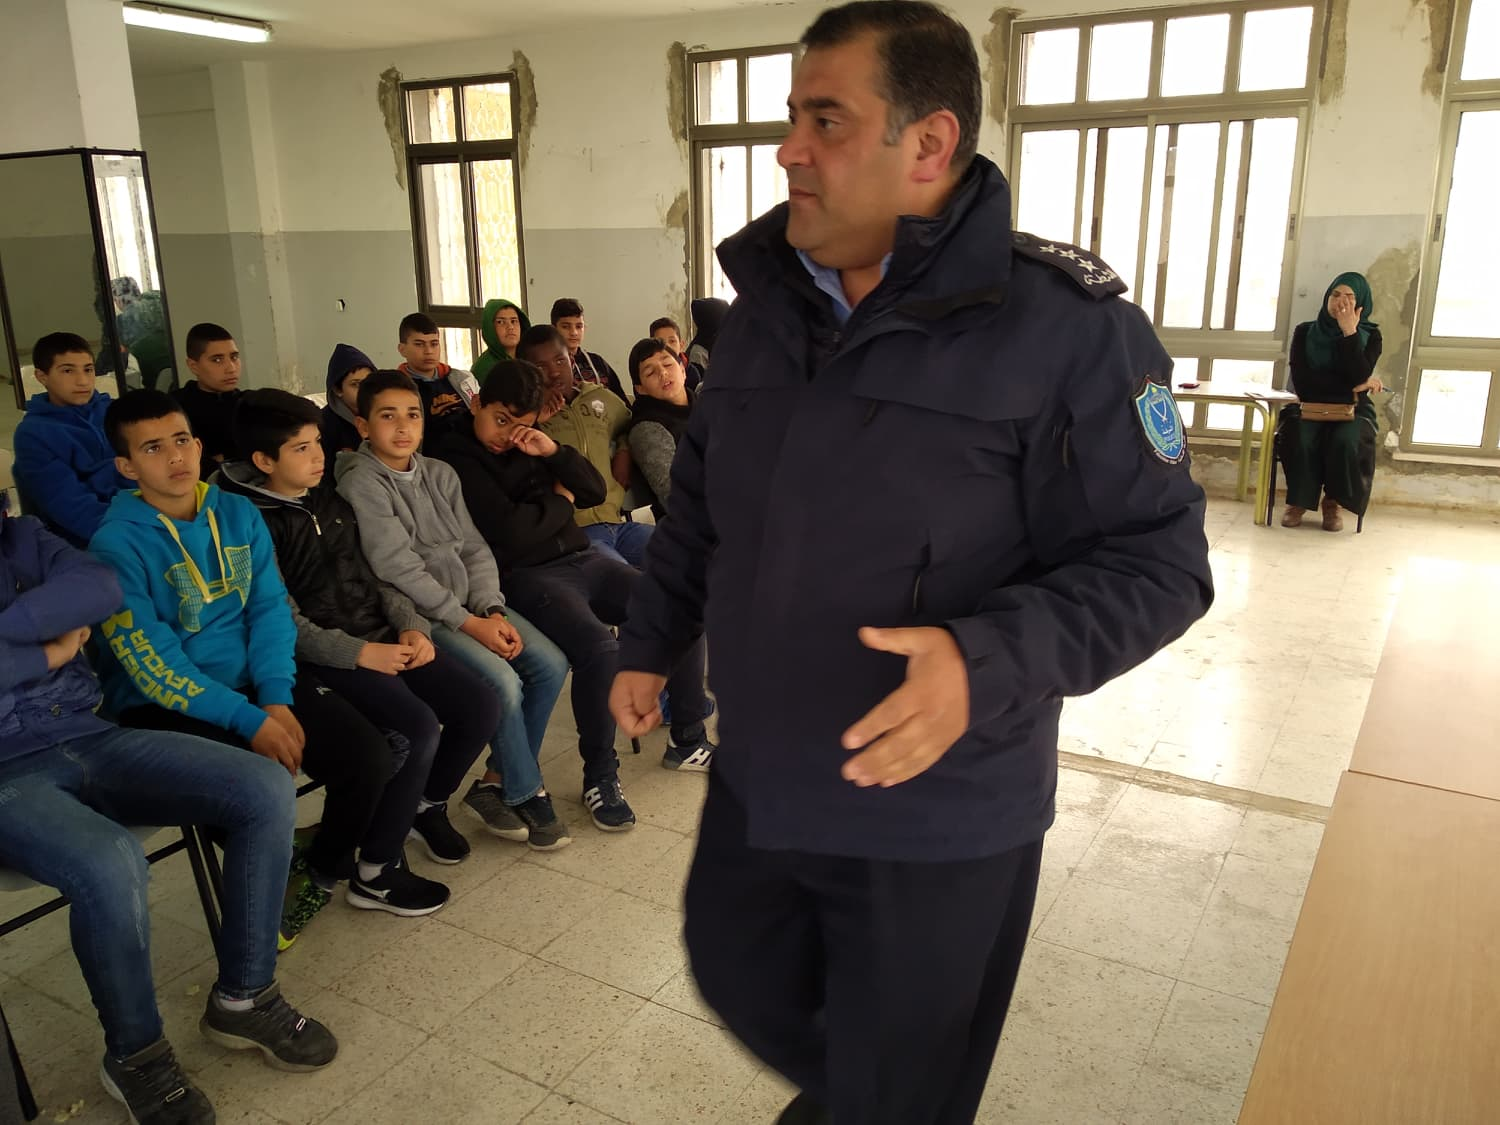 A guided lecture by the Palestinian Police